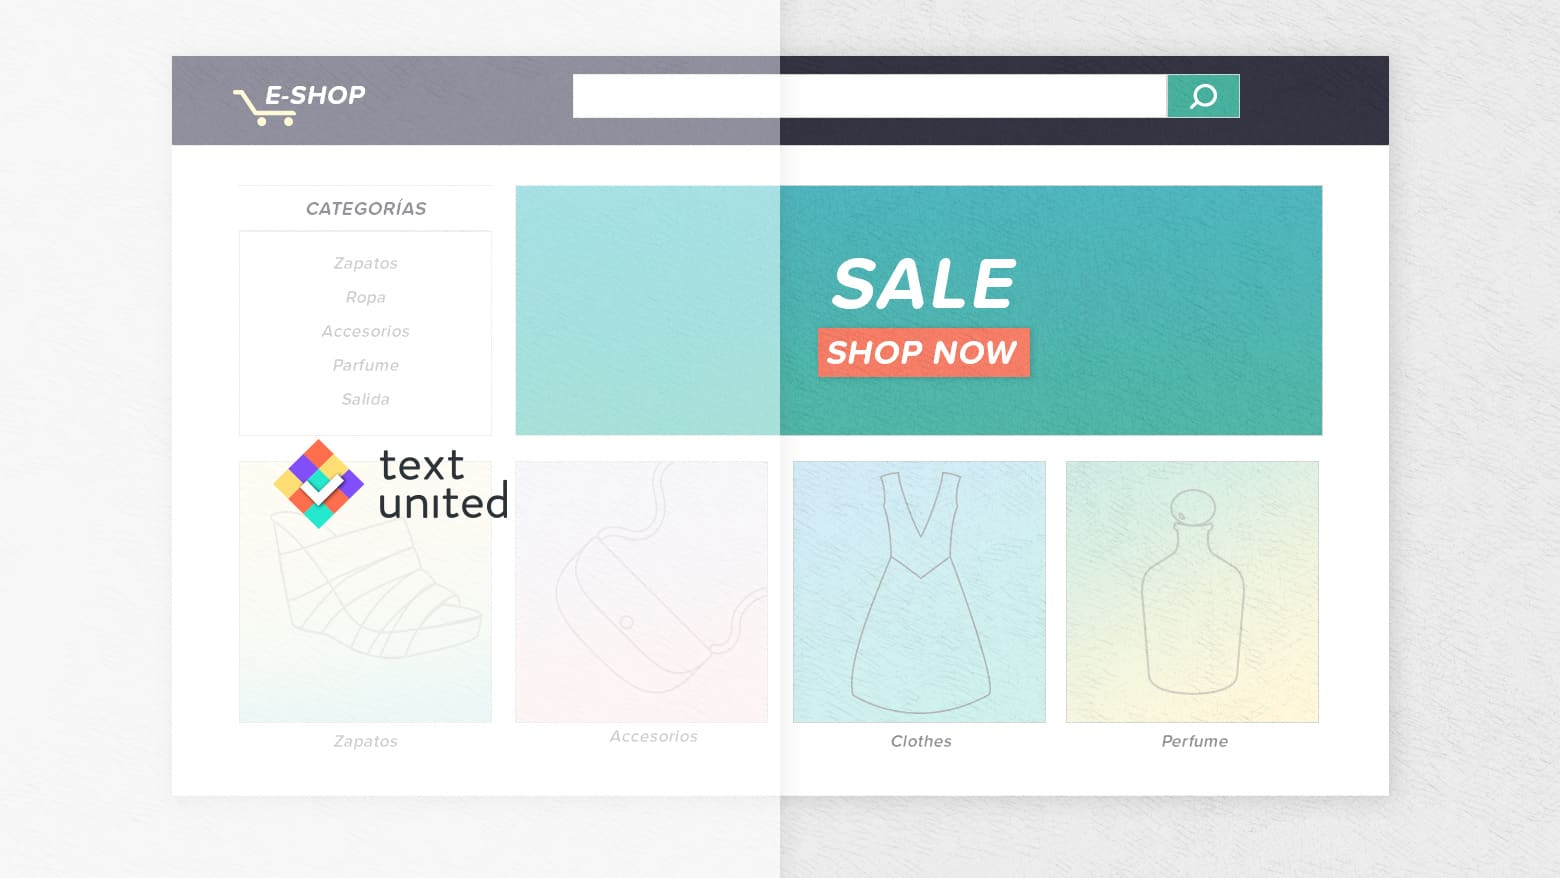 Translating e-Commerce: Overlay Editor or File-Based Approach?